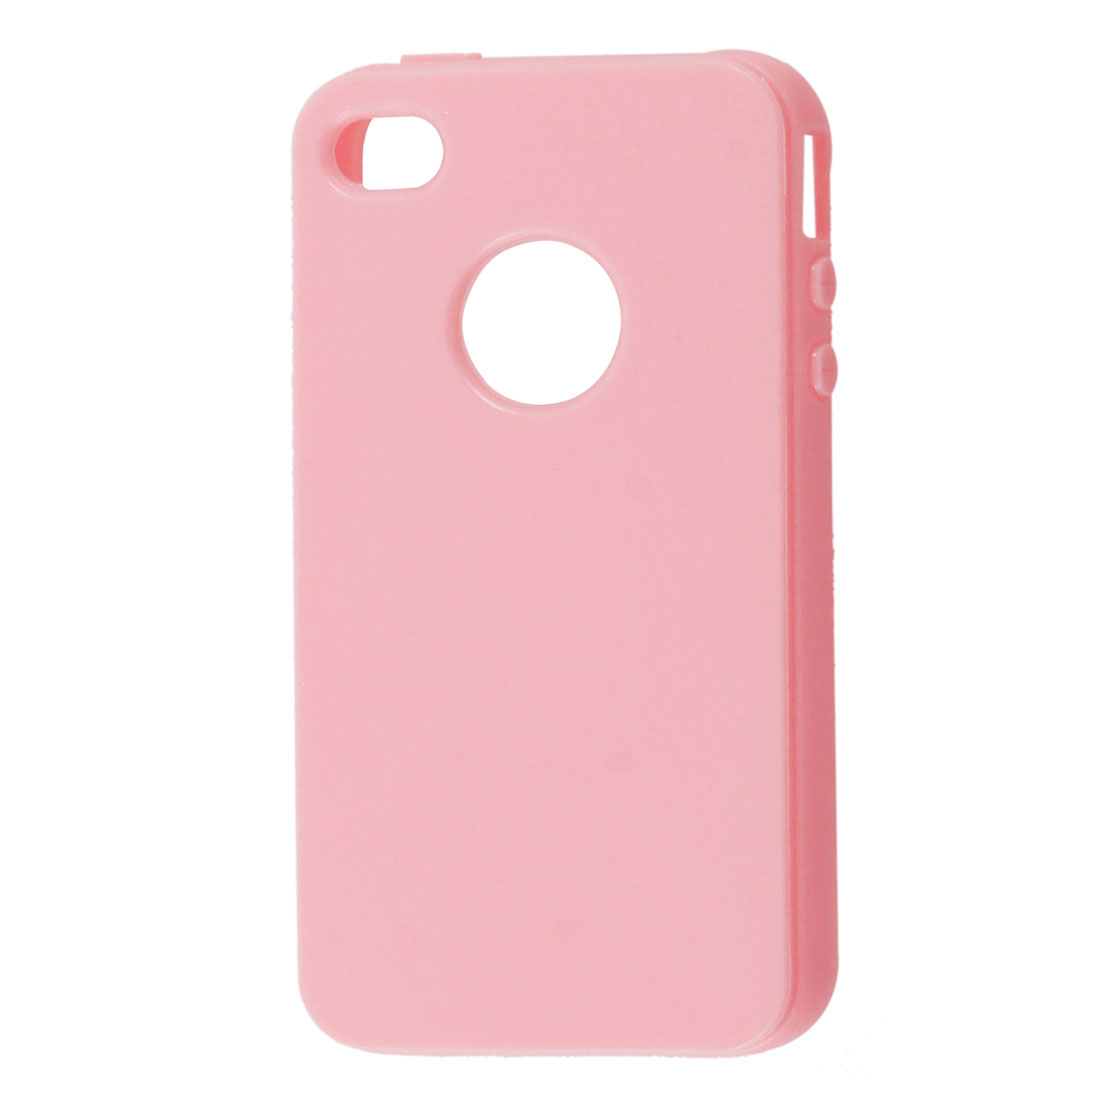 Pink TPU Soft Plastic Protective Cover Shell for iPhone 4 4GS